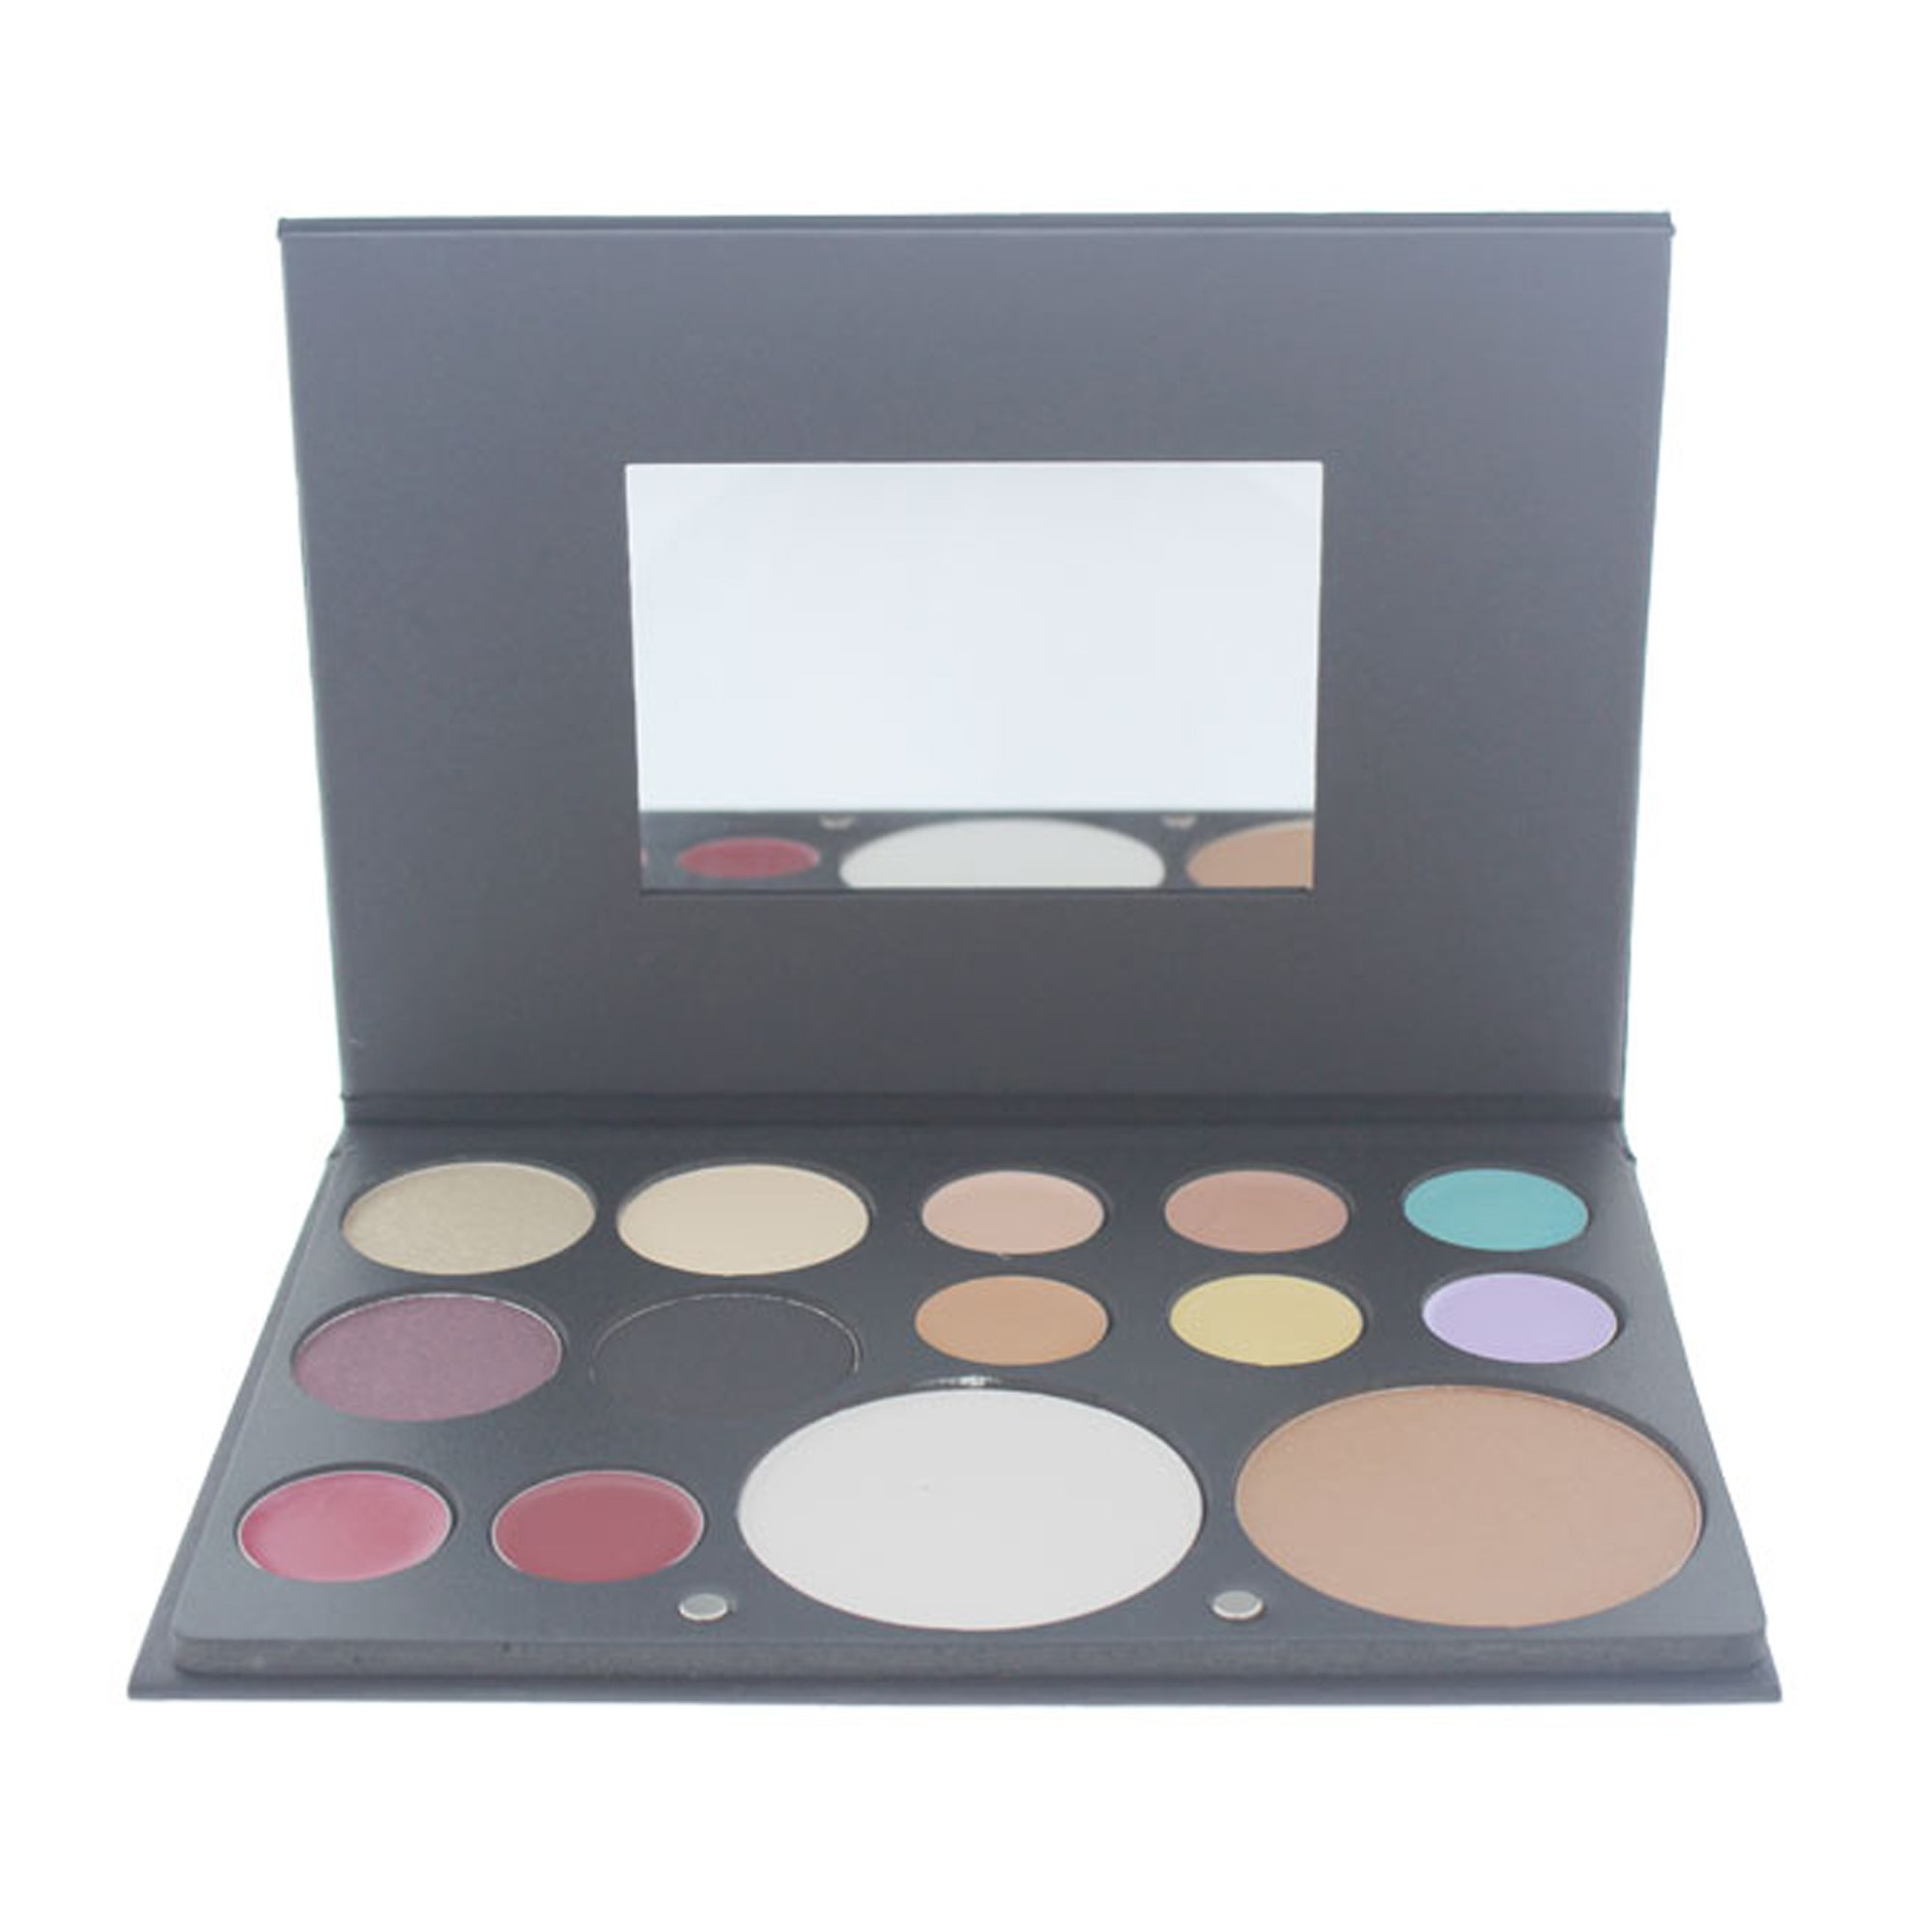 Ofra Professional Mixed Palette Makeup for Women